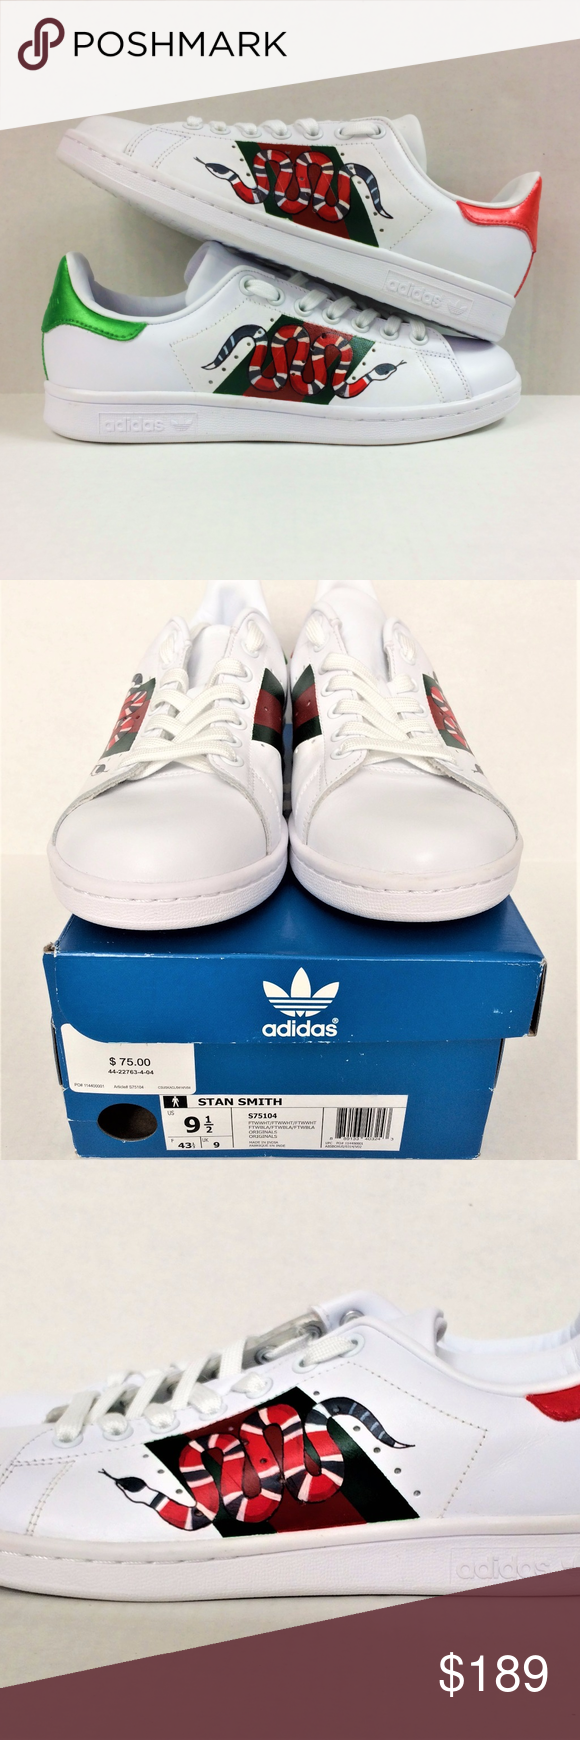 online retailer bc920 54fd2 Adidas Original Stan Smith Snake Custom Sneakers These are ...